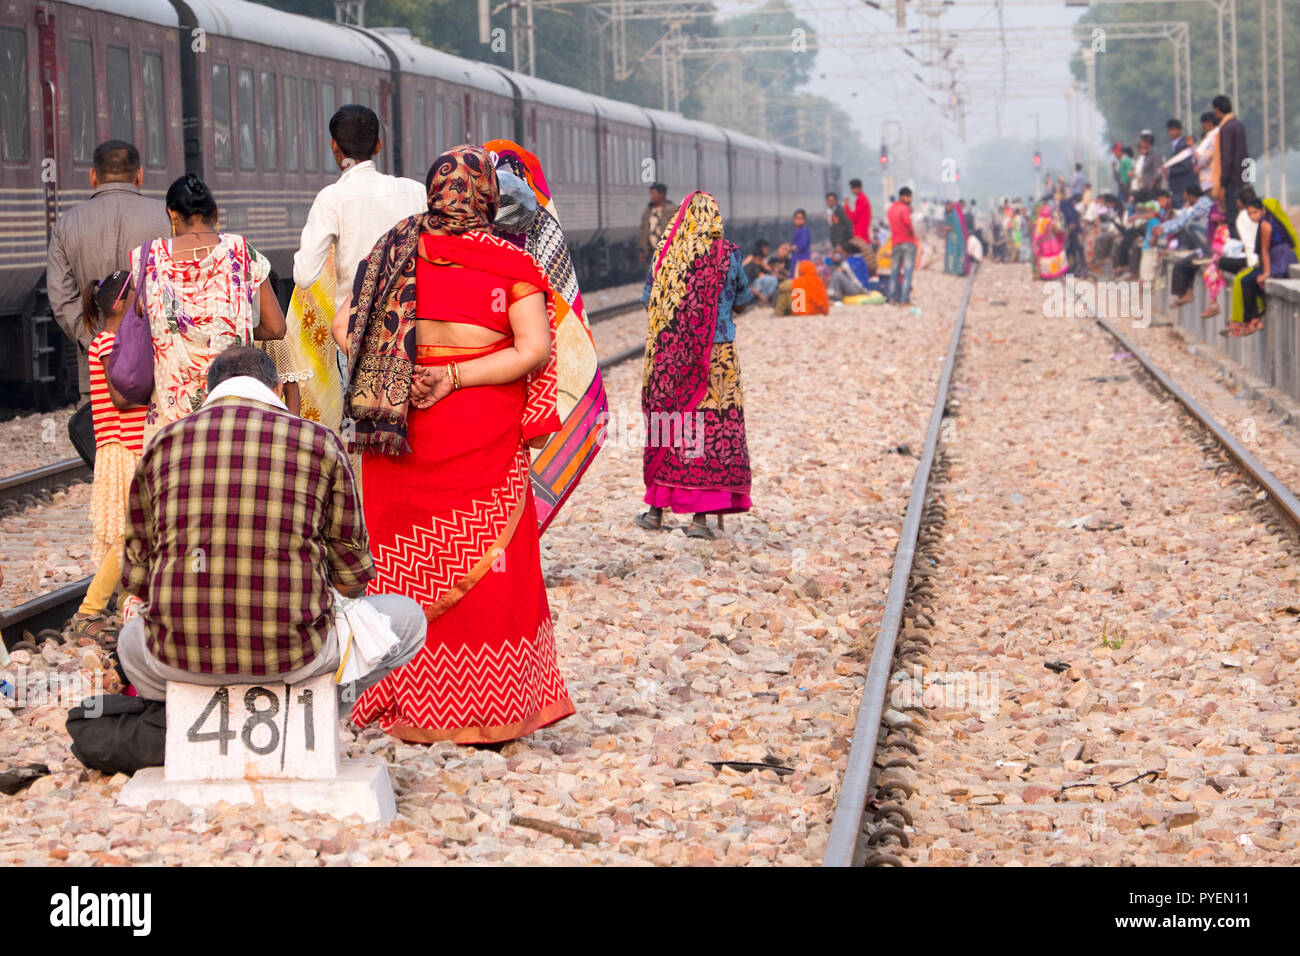 Indian passengers waiting on the rail tracks for a train to arrive, India - Stock Image